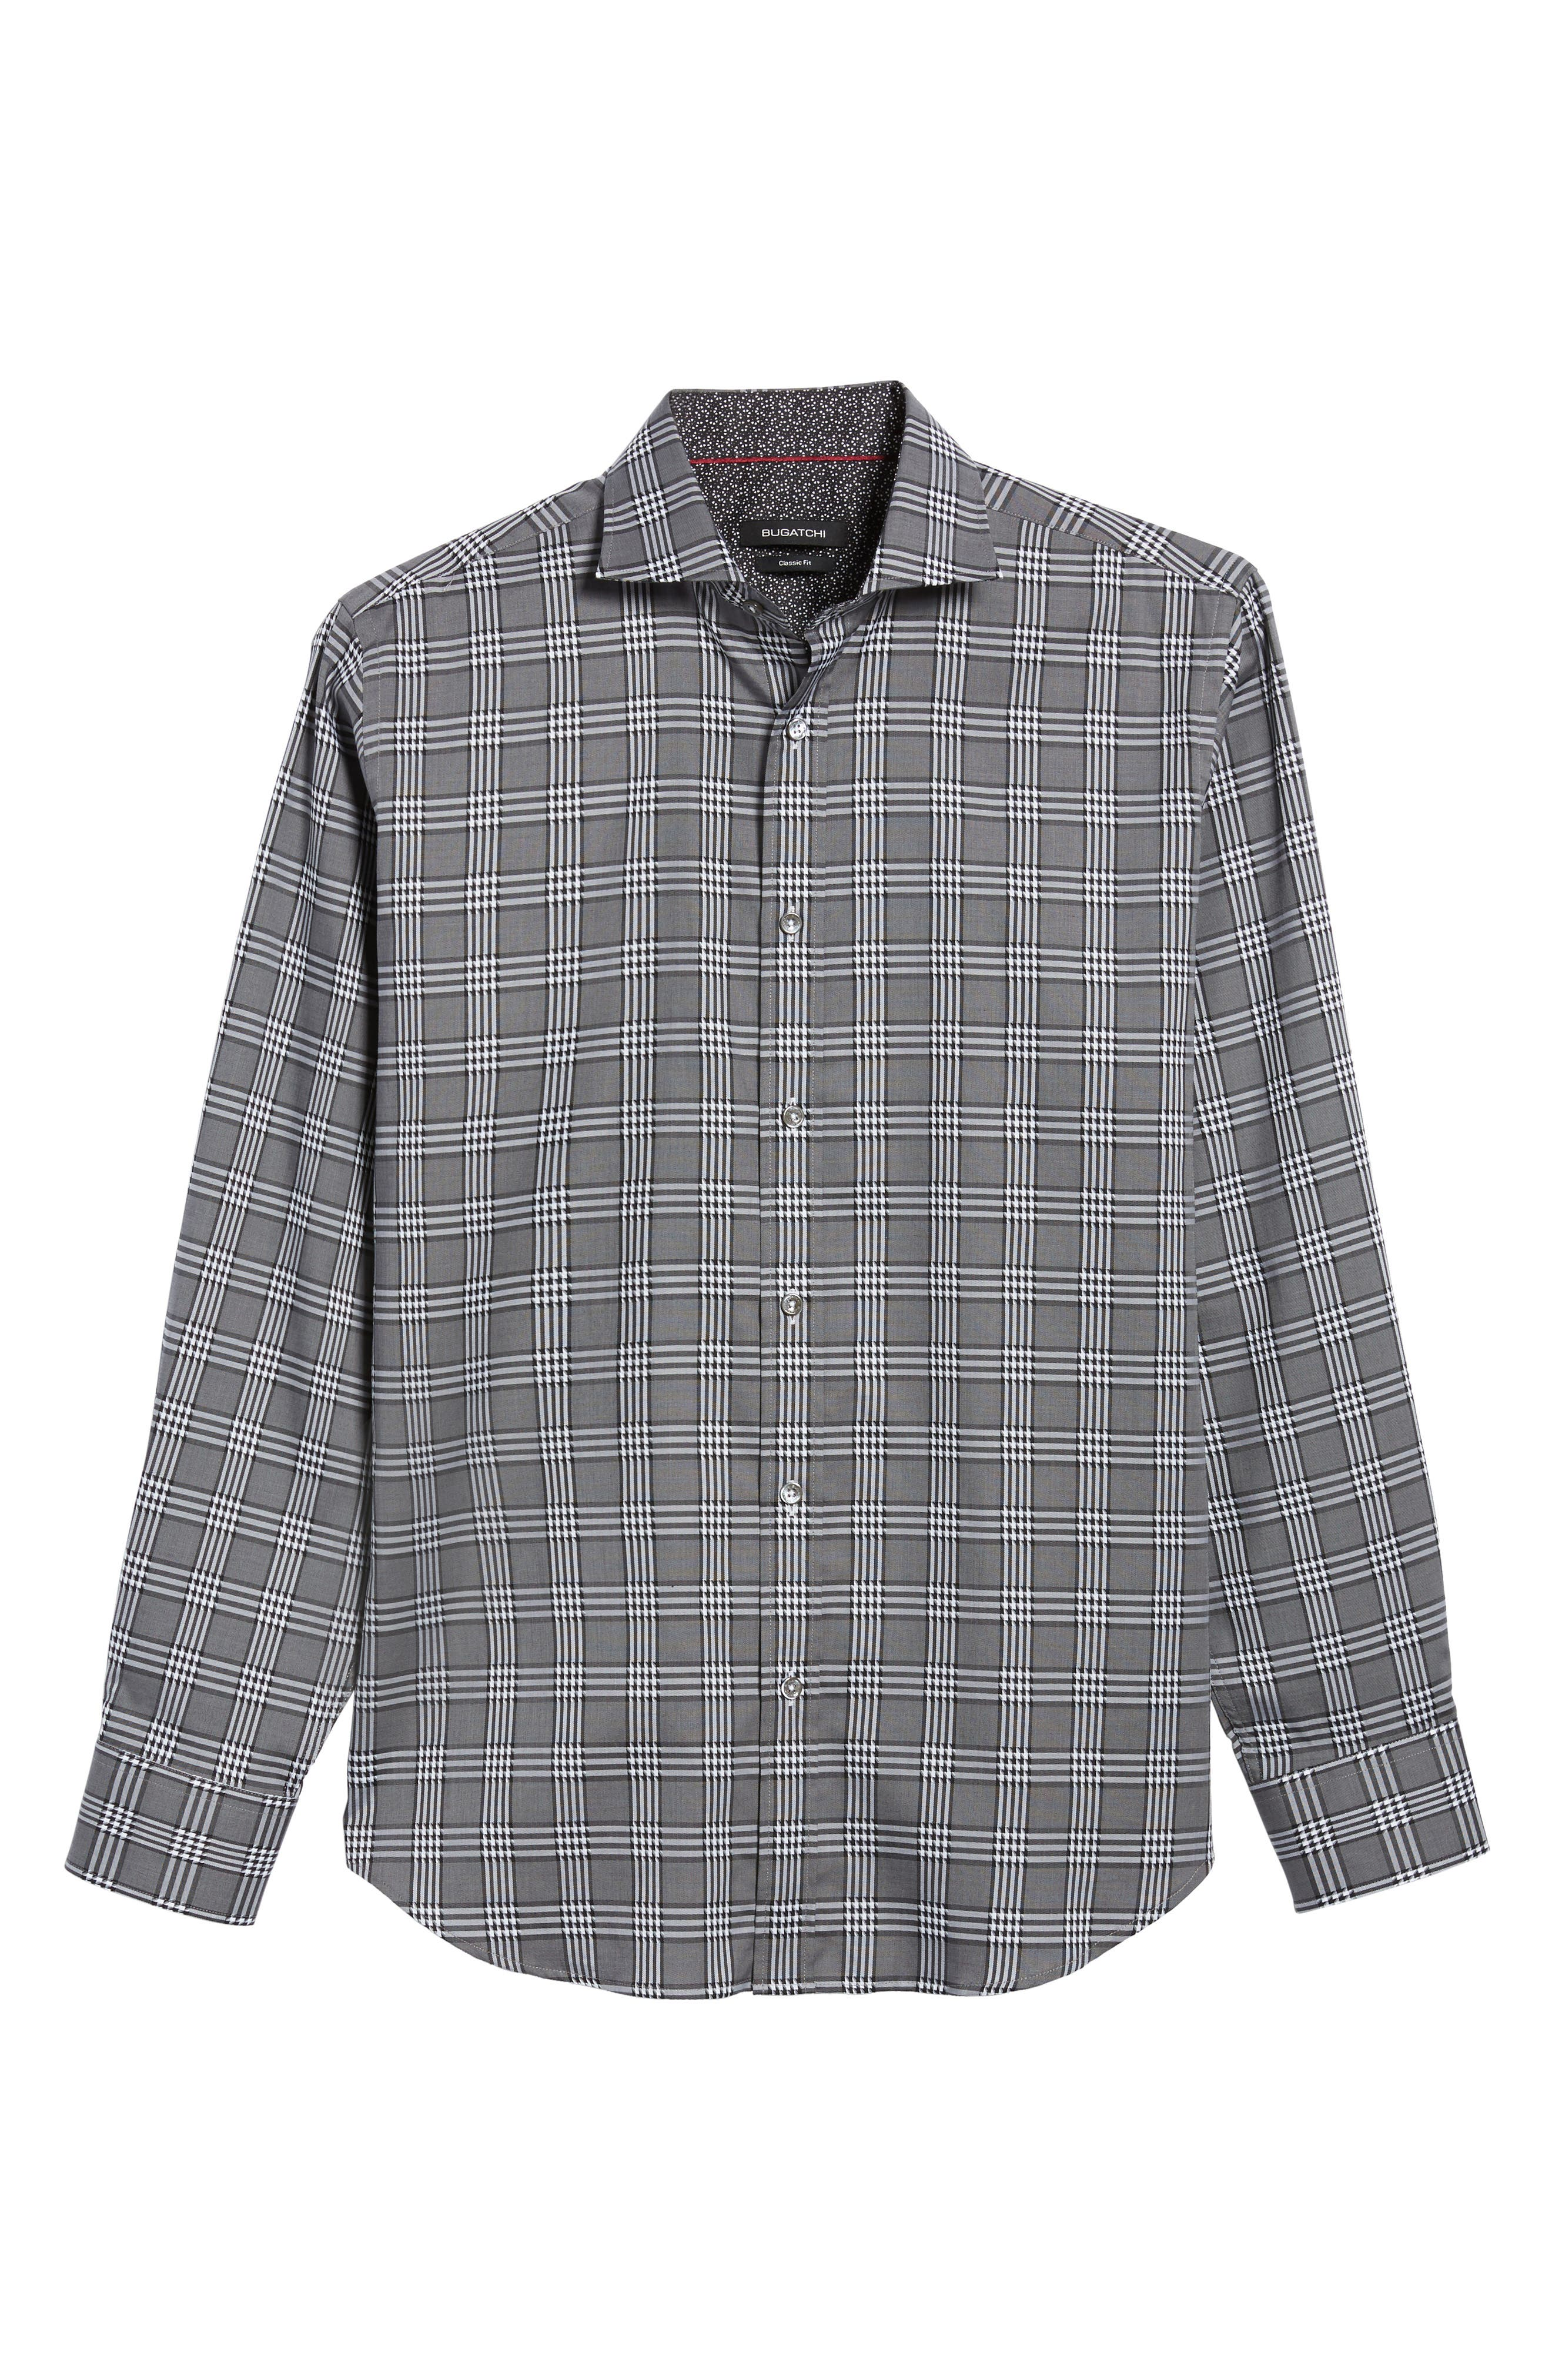 Classic Fit Plaid Sport Shirt,                             Alternate thumbnail 6, color,